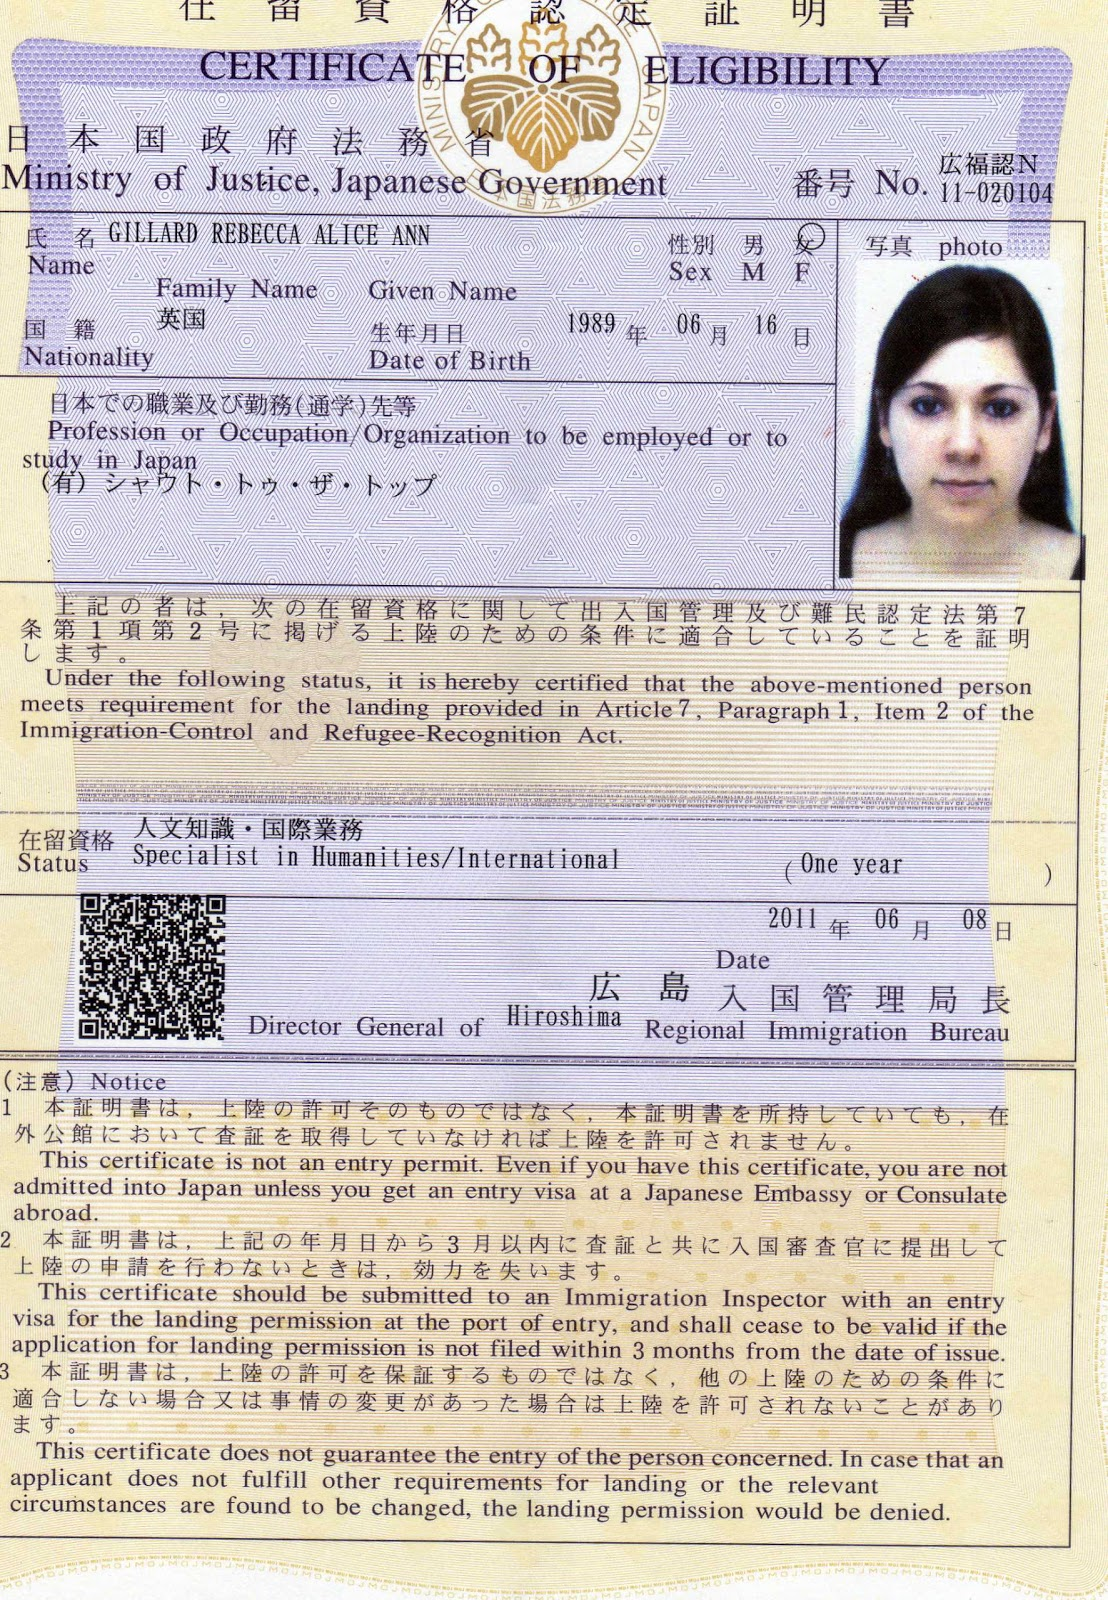 Application Form Certificate Of Eligibility Japan on certificate of sponsorship template, certificate of eligibility japan visa, ds-2019 form, certificate of eligibility va, bill of sale form, certificate of eligibility gi bill, certificate of eligibility for godparents,